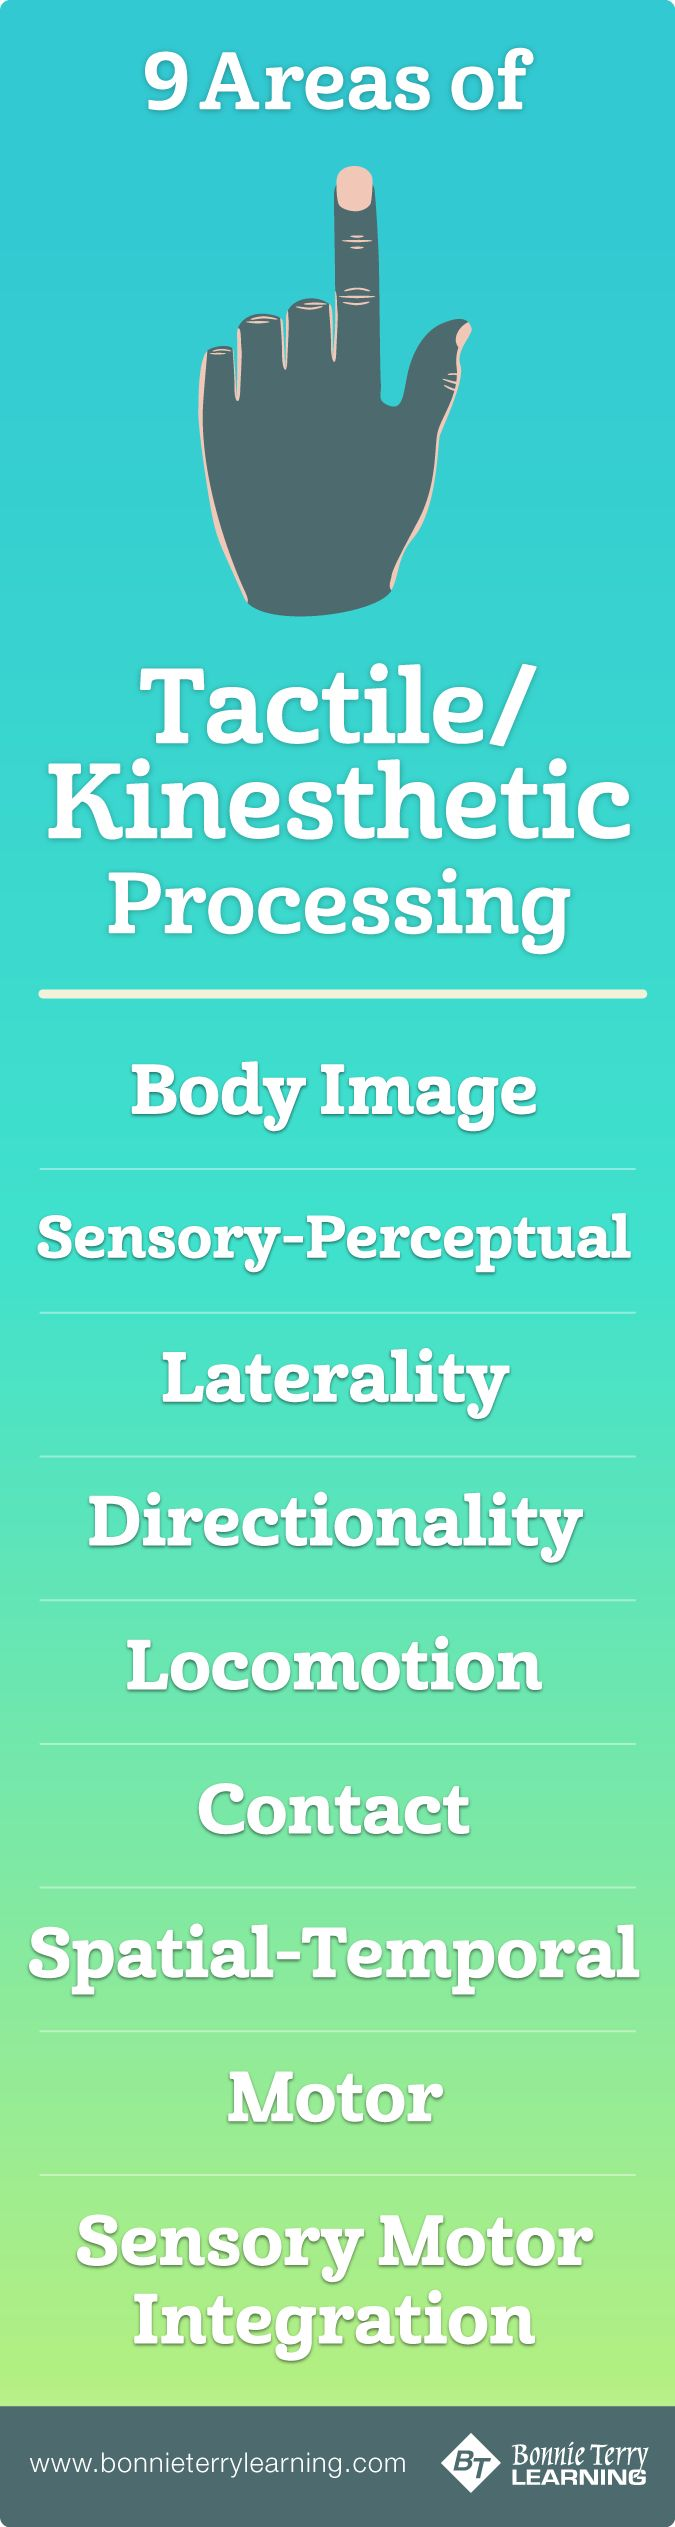 Areas of Tactile/Kinesthetic Processing